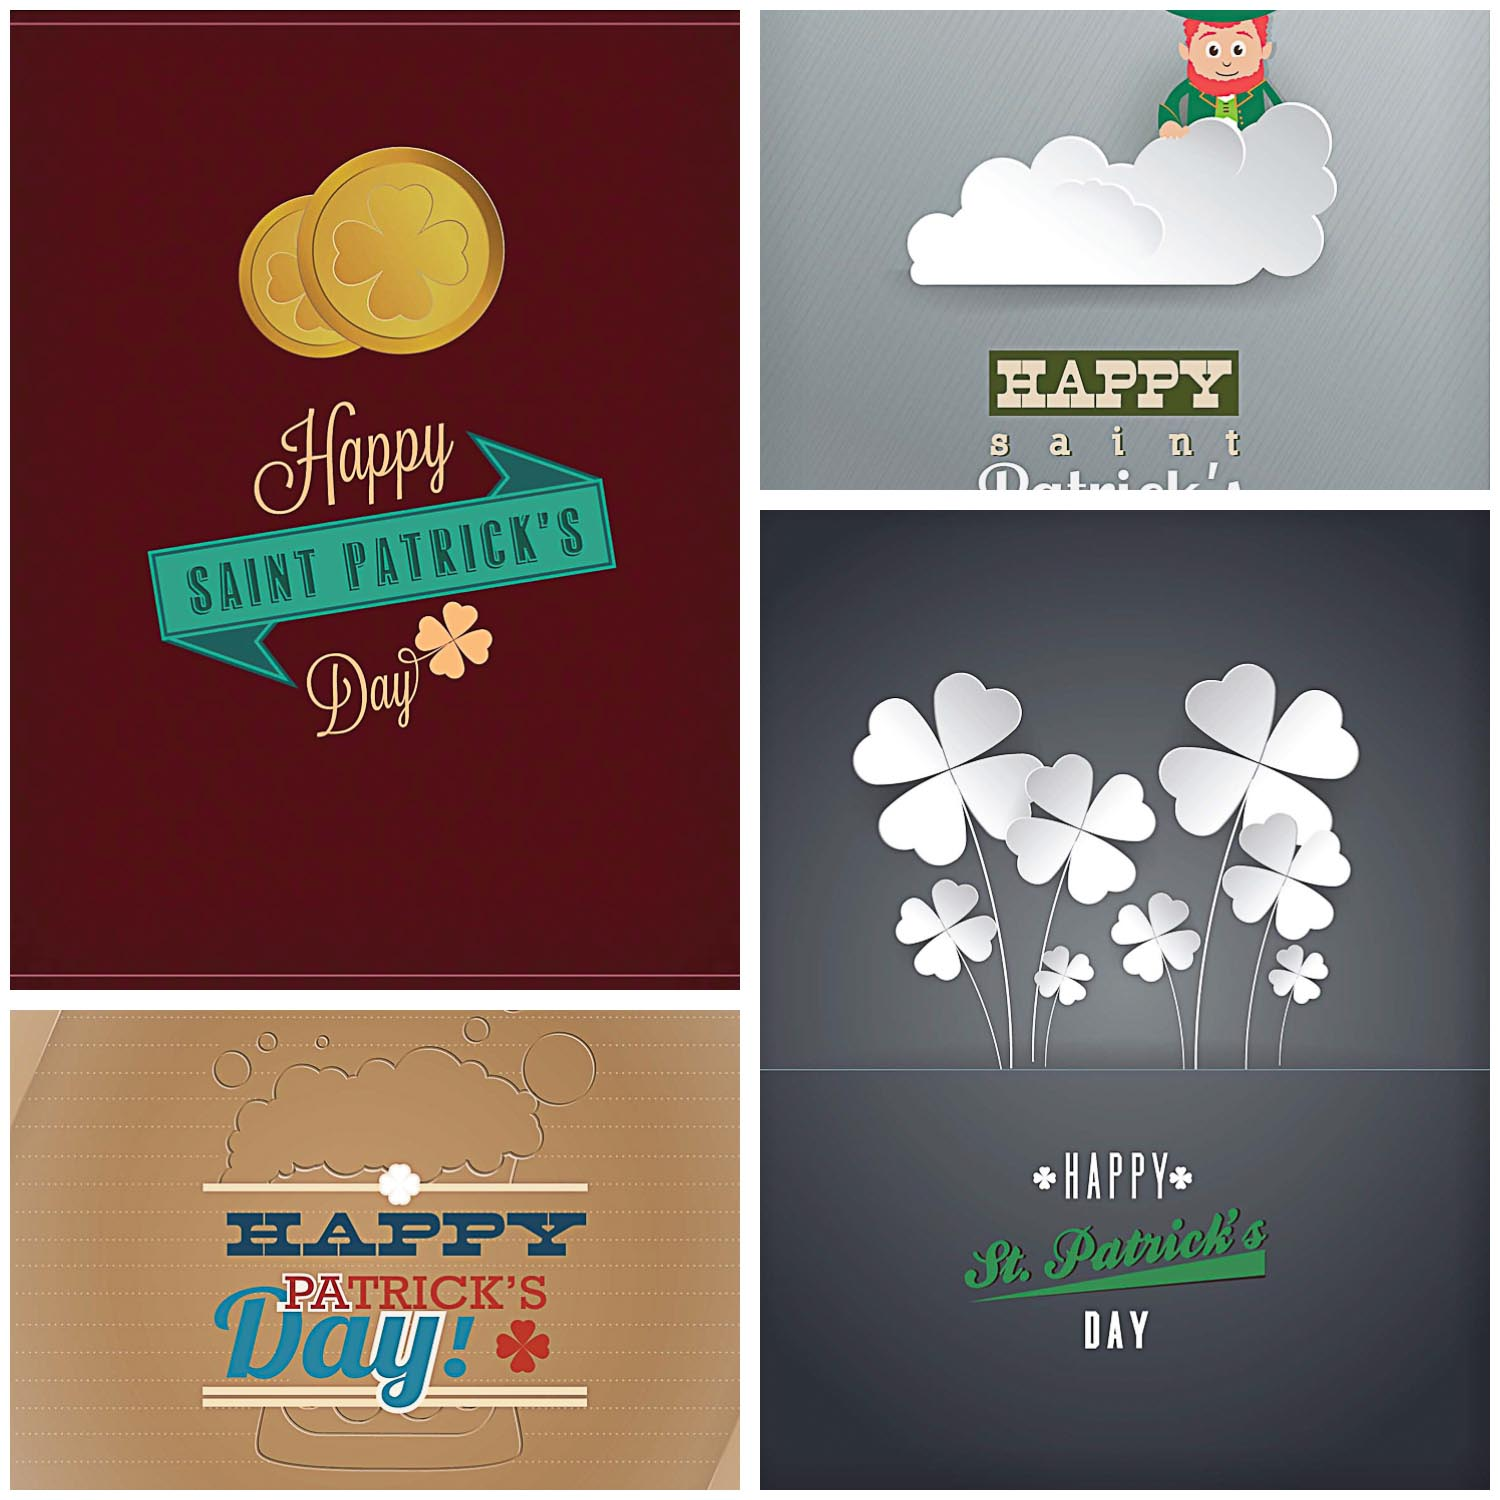 Great greeting cards for St.Patrick's Day